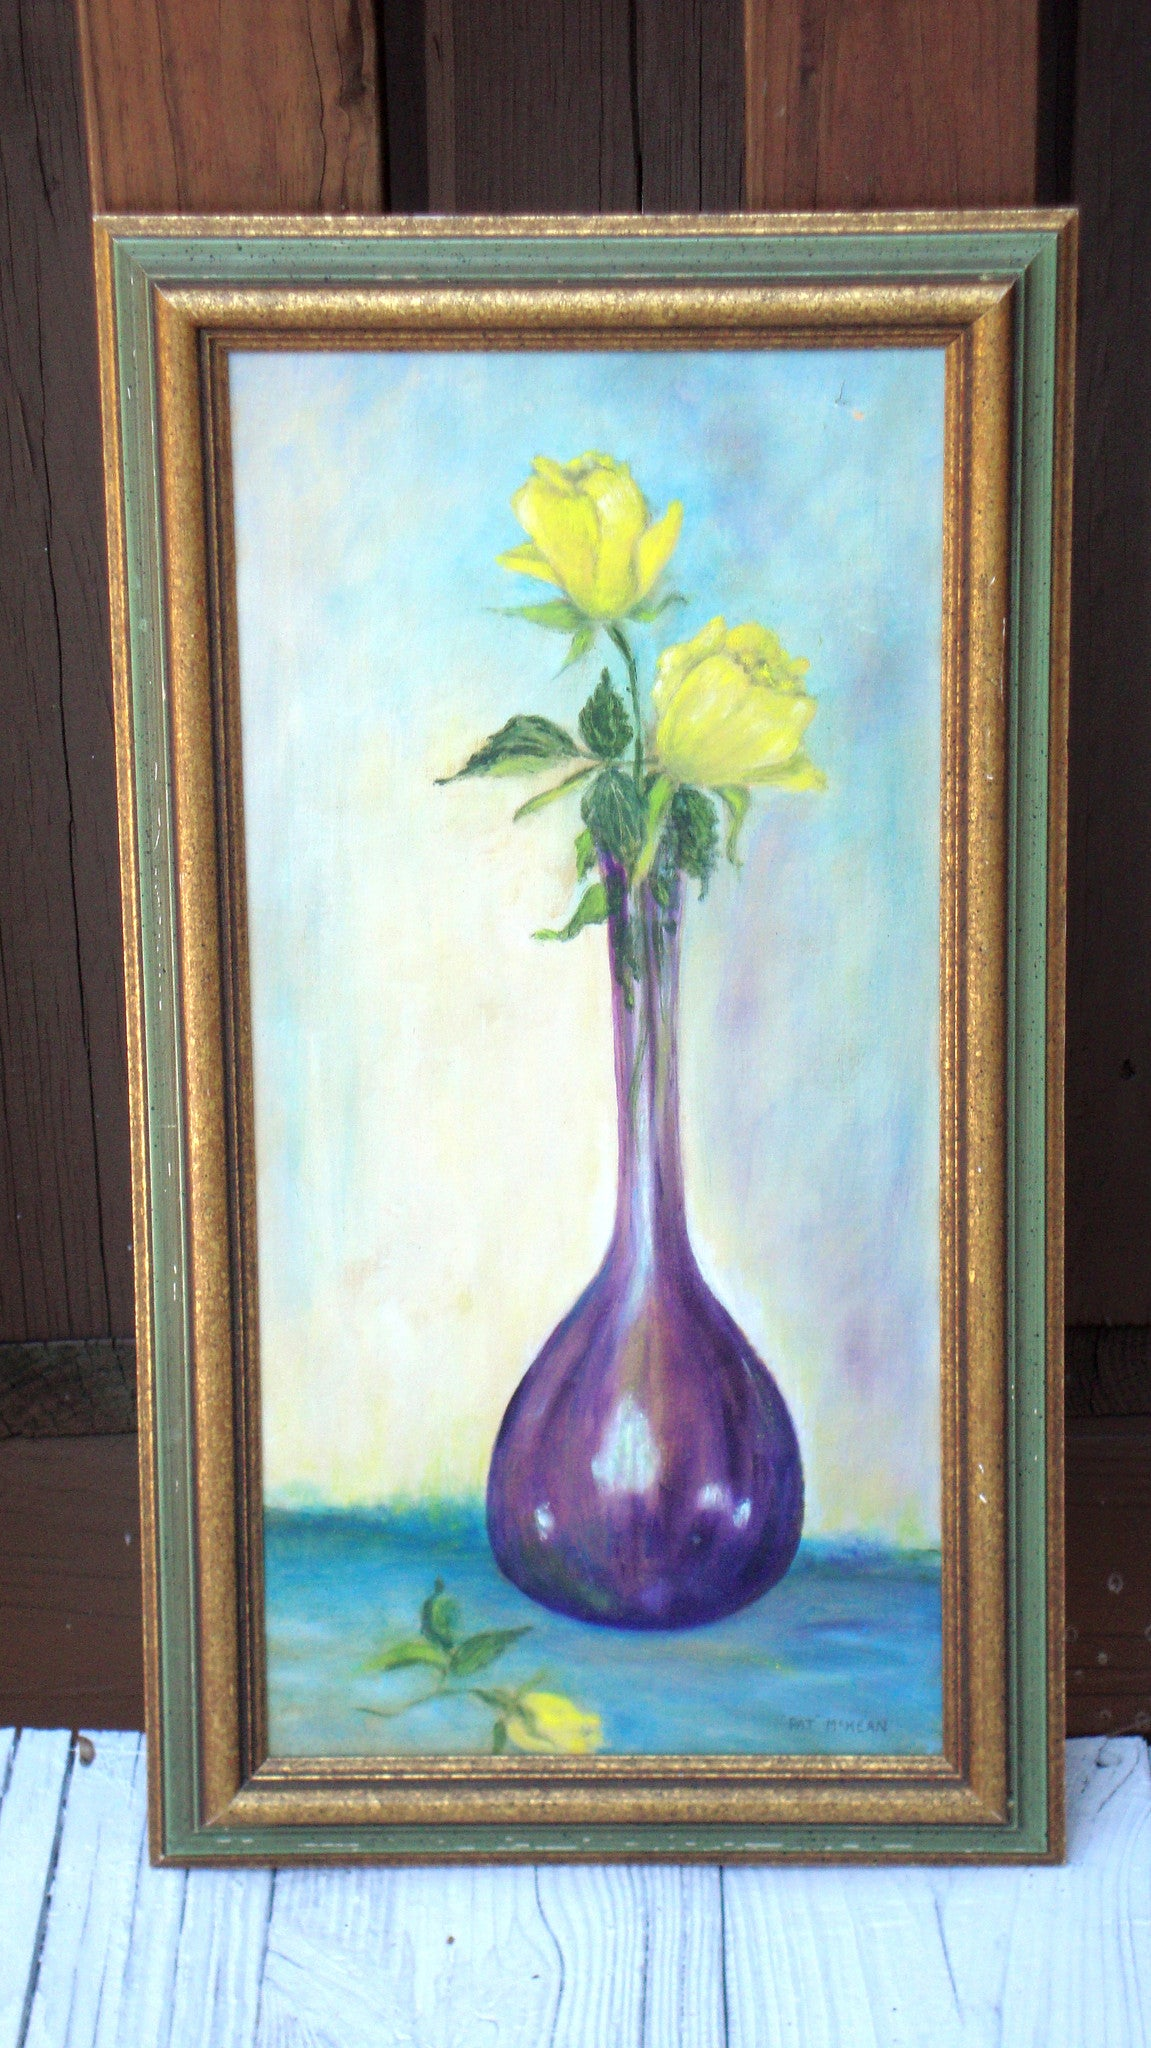 Vintage Mid-Century Yellow Flowers in a Purple Vase Painting